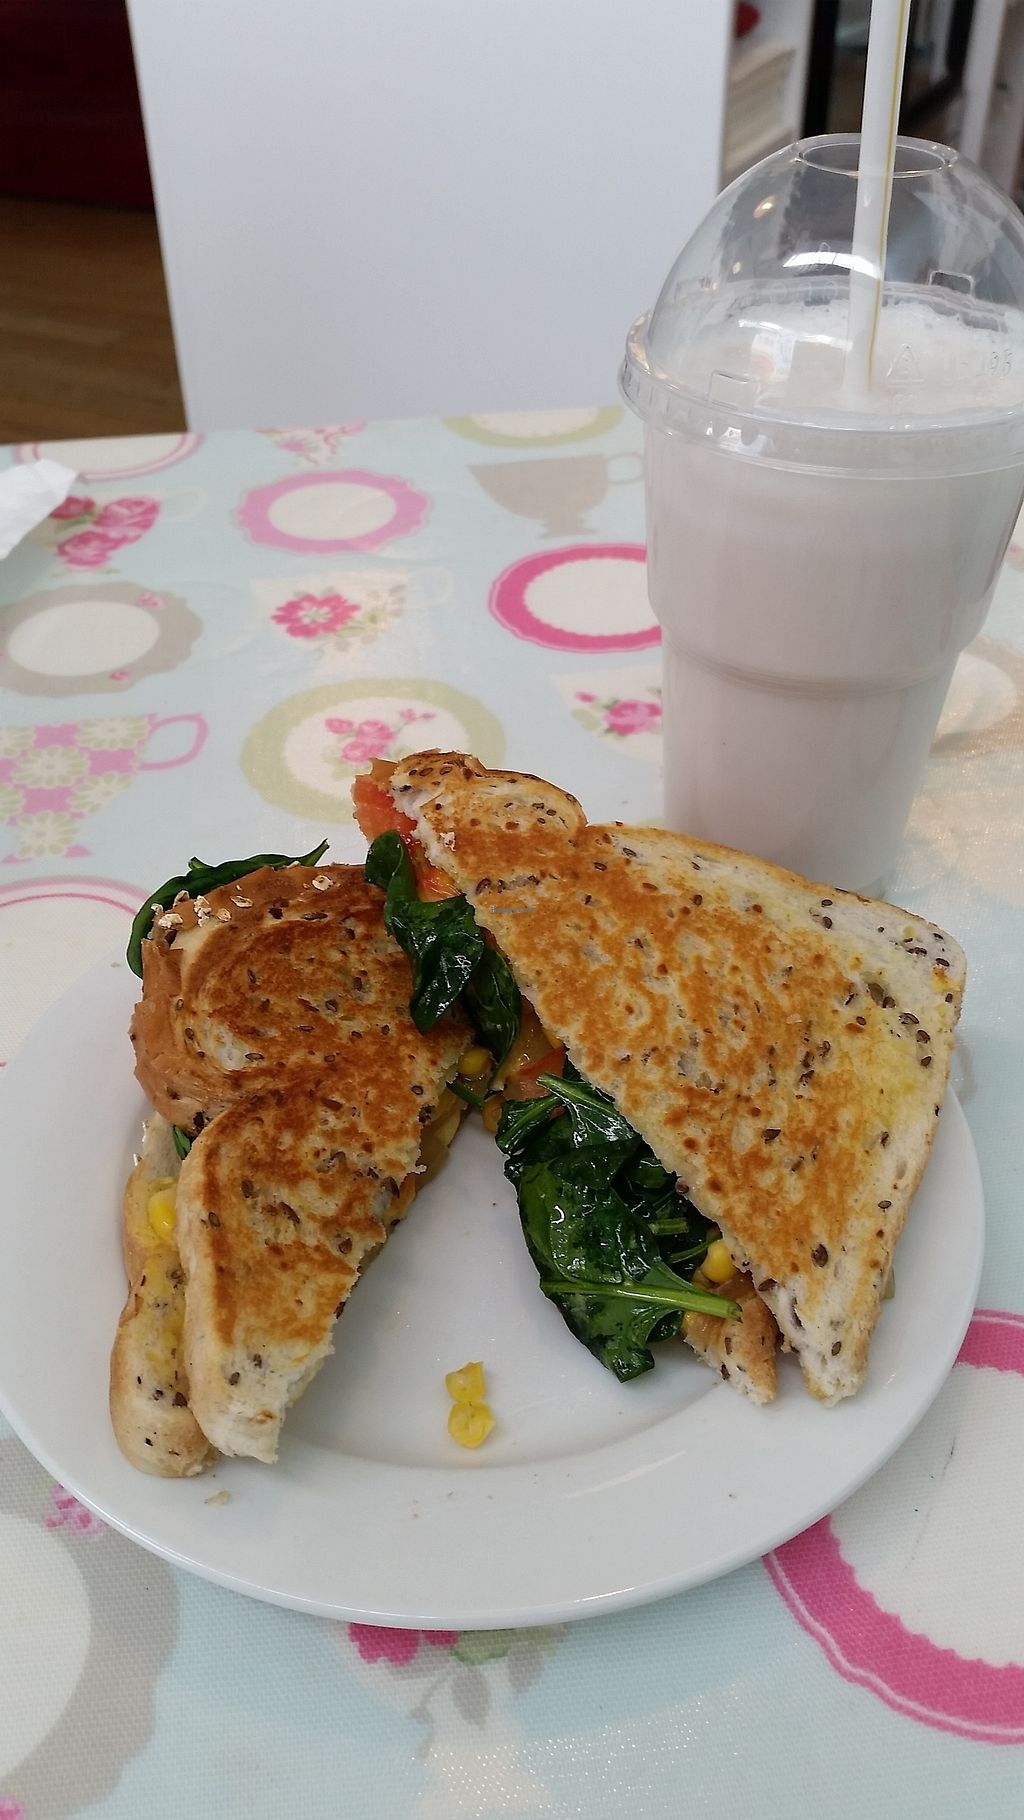 """Photo of Penelopes Cakery Deli  by <a href=""""/members/profile/AndyTheVWDude"""">AndyTheVWDude</a> <br/>Toasted sandwich & Soyshake <br/> September 4, 2017  - <a href='/contact/abuse/image/95170/300978'>Report</a>"""